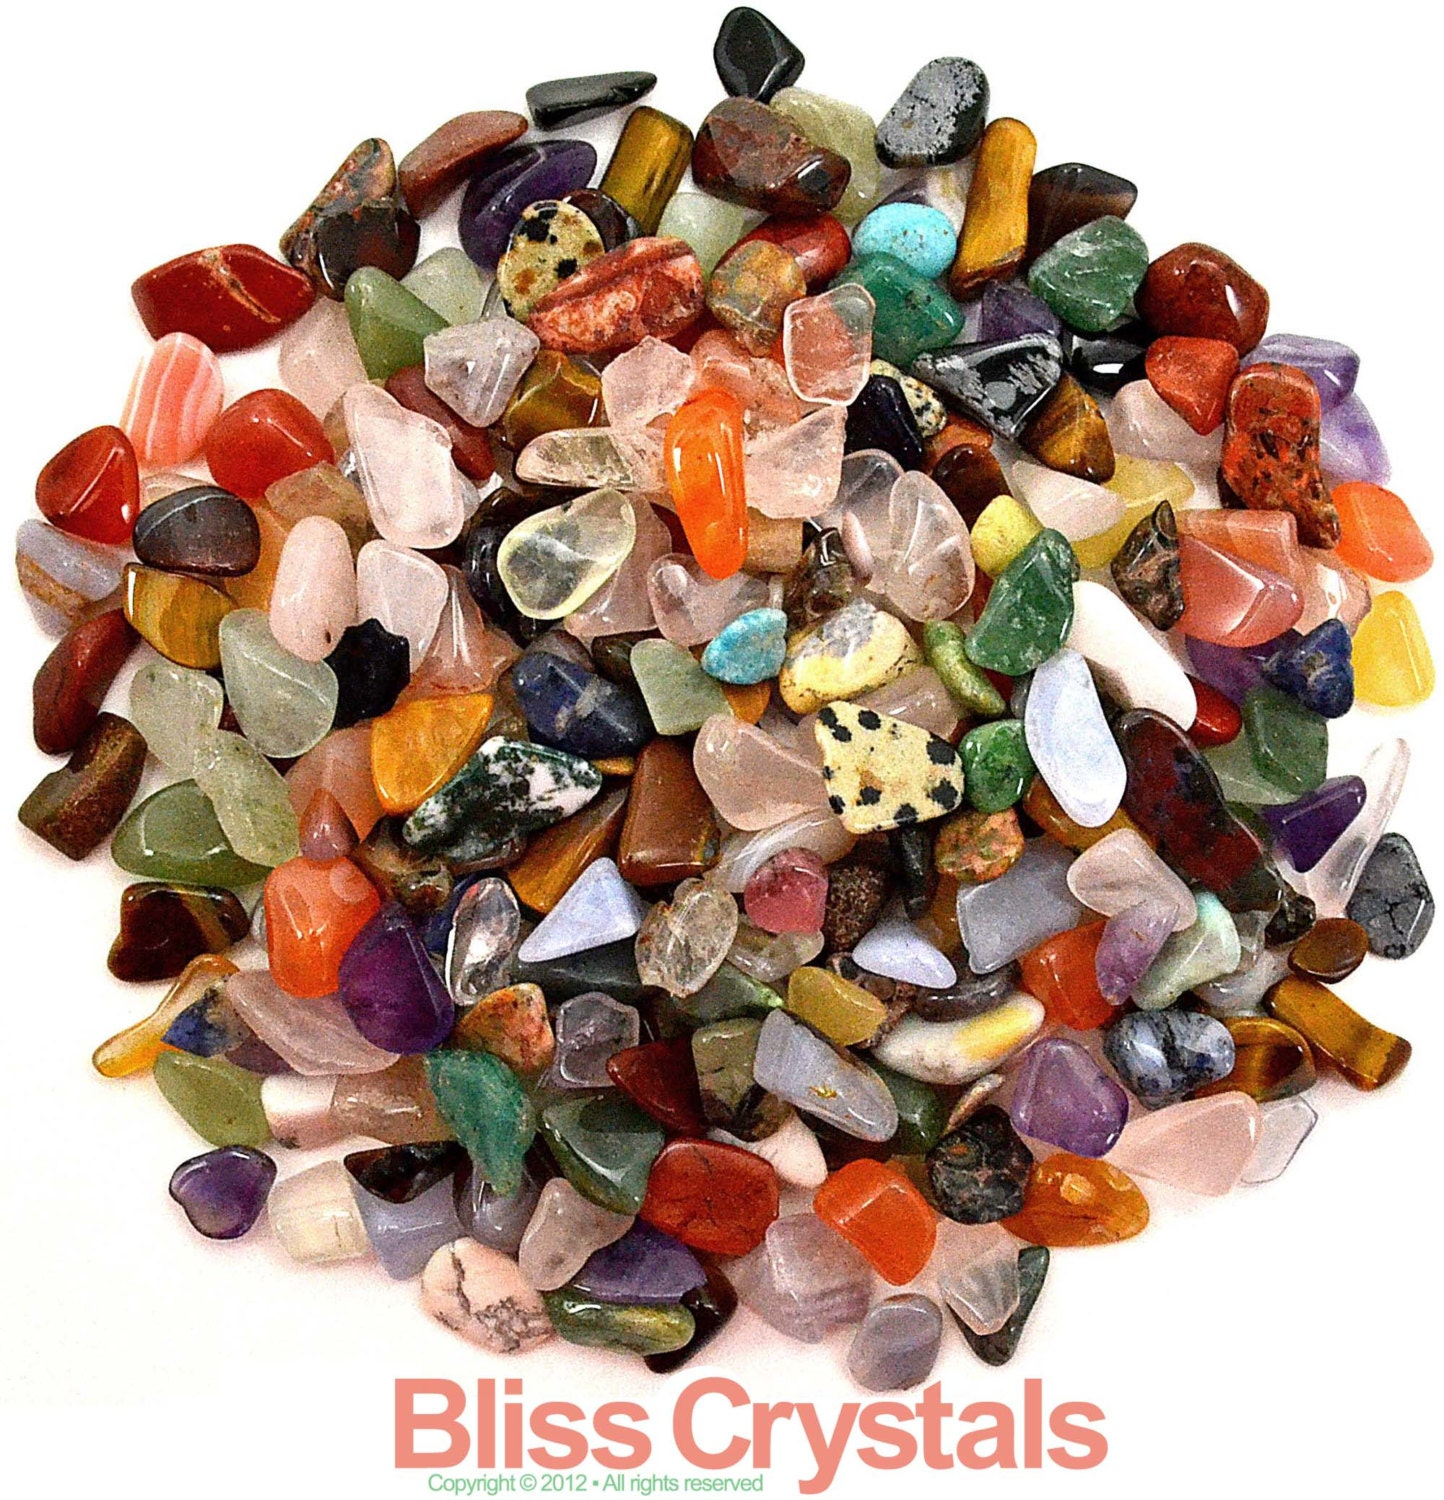 """250 Mixed XS All Natural Mini TUMBLED STONES Size 2 """"Not Dyed"""" - Healing Crystals, Medicine Bag, Reiki, Feng Shui, Jewelry & Crafts - BlissCrystals"""